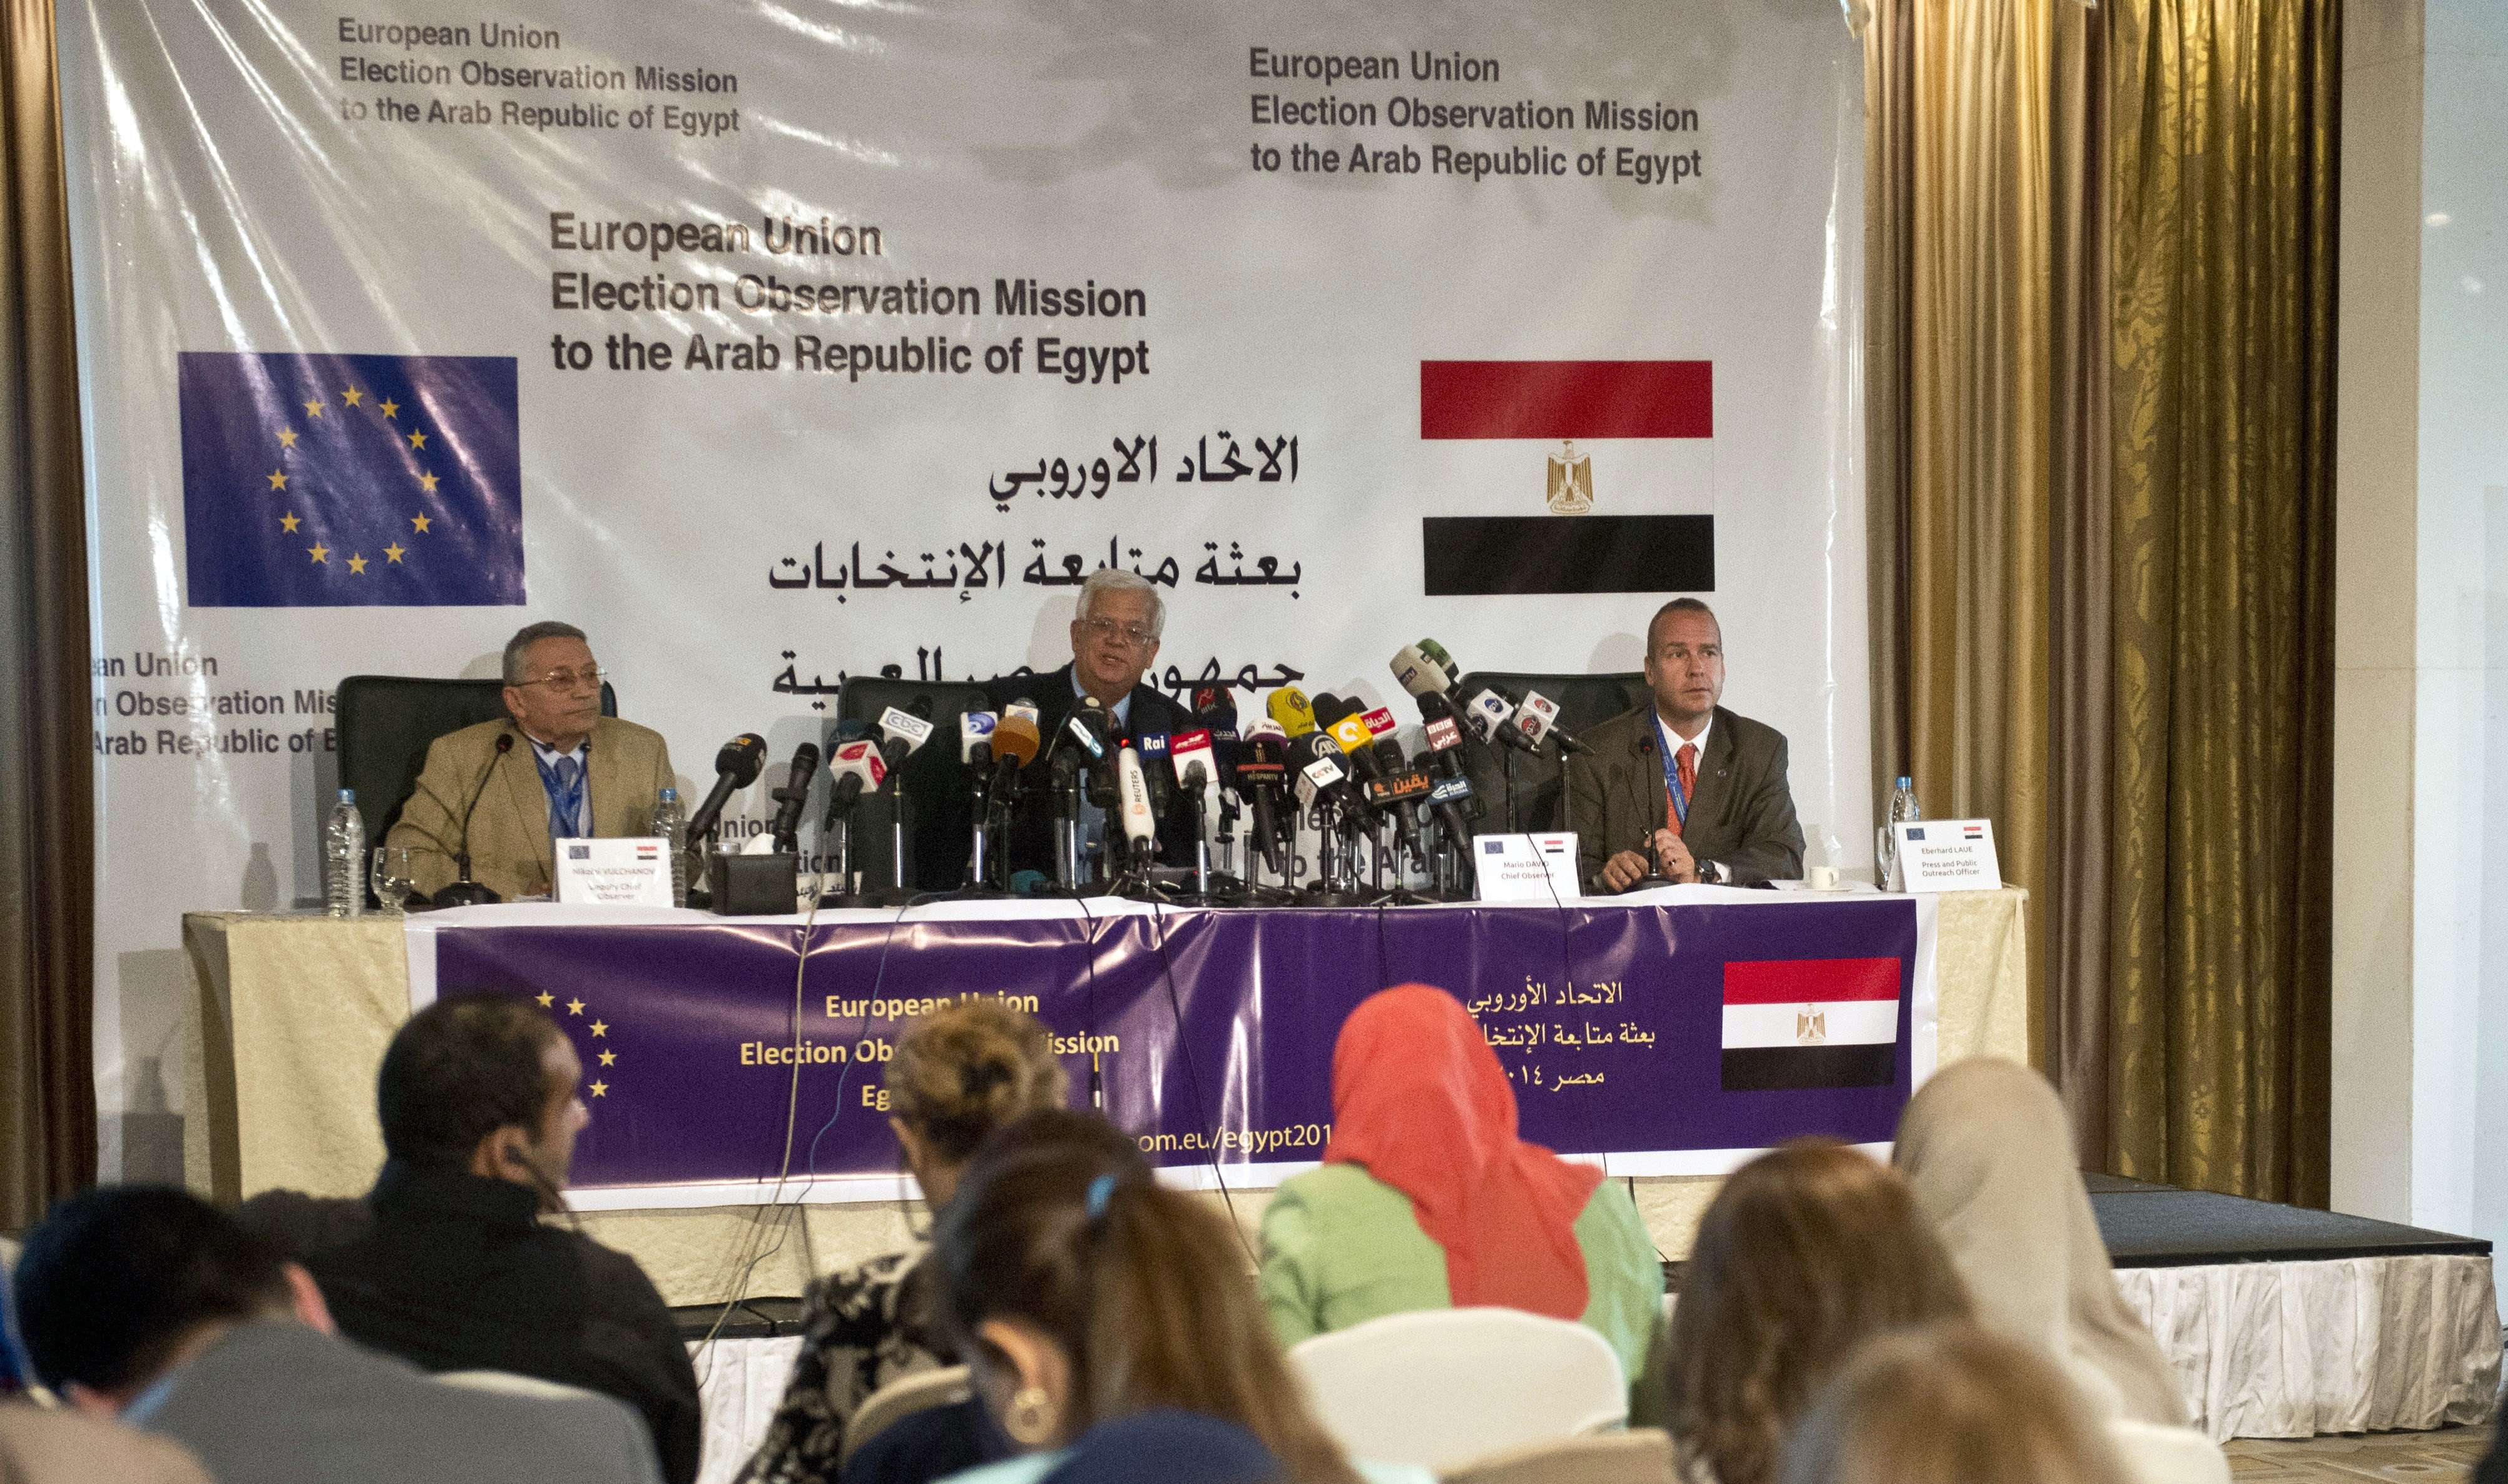 Mario David (C), chief observer of the European Union election assessment team to Egypt, Nikolai Vulchanov (L) deputy chief observer and Eberhard Laue (R) speak during a press conference in Cairo on May 19, 2014. Egypt's presidential frontrunner Abdel Fattah al-Sisi who is widely expected to trounce his only rival, leftist leader Hamdeen Sabbahi, has not addressed any public rallies so far during the campaign.  (AFP PHOTO / KHALED DESOUKI)